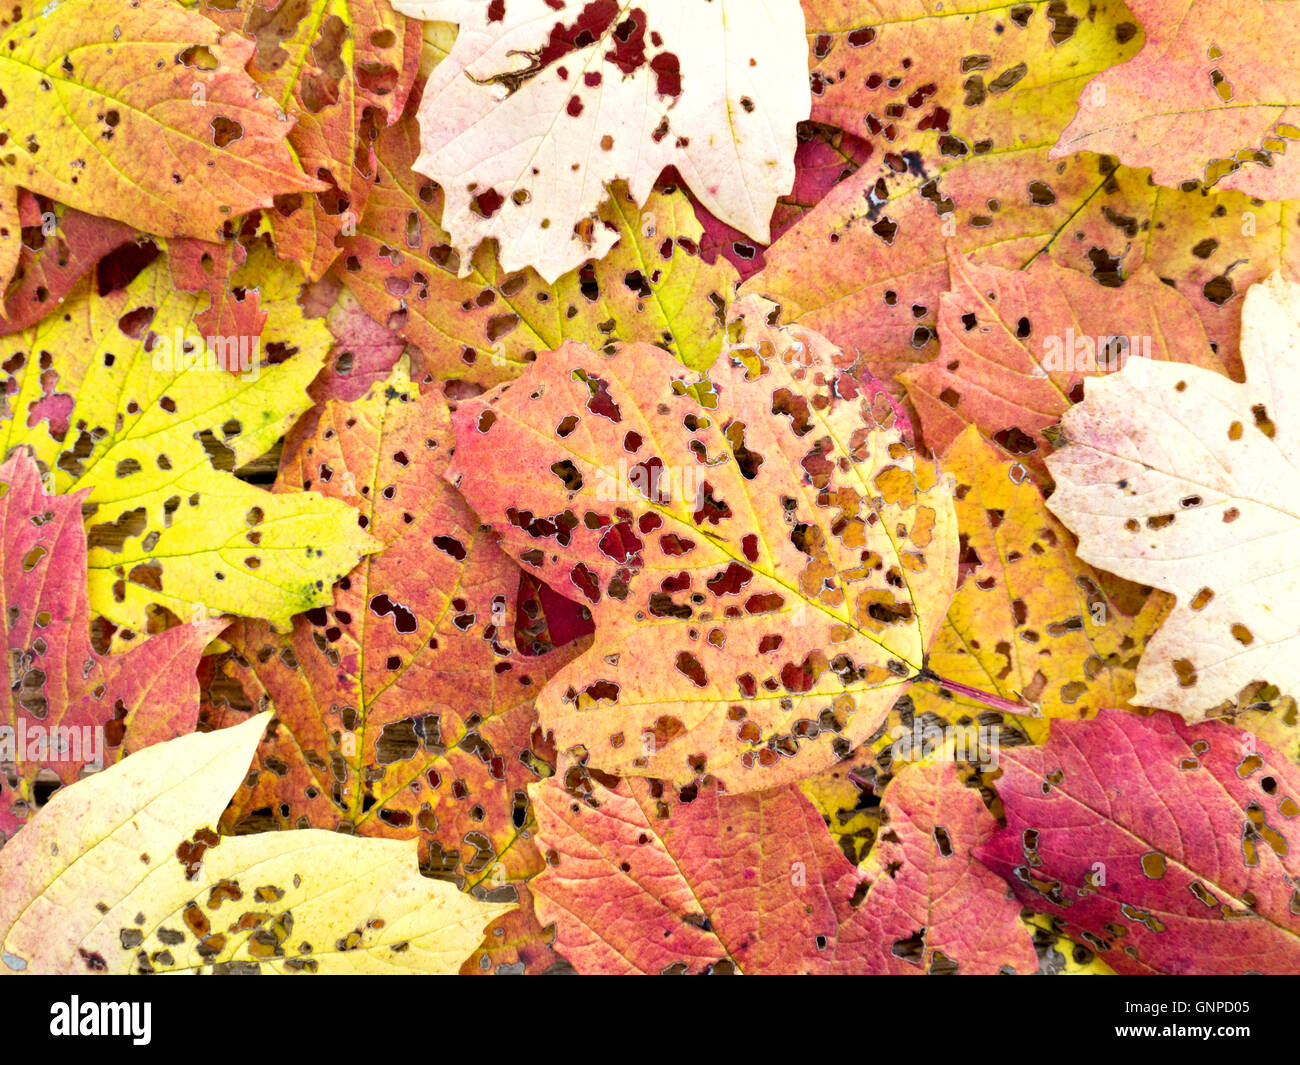 Fall colored viburnum leaves perforated by pest insects - Stock Image